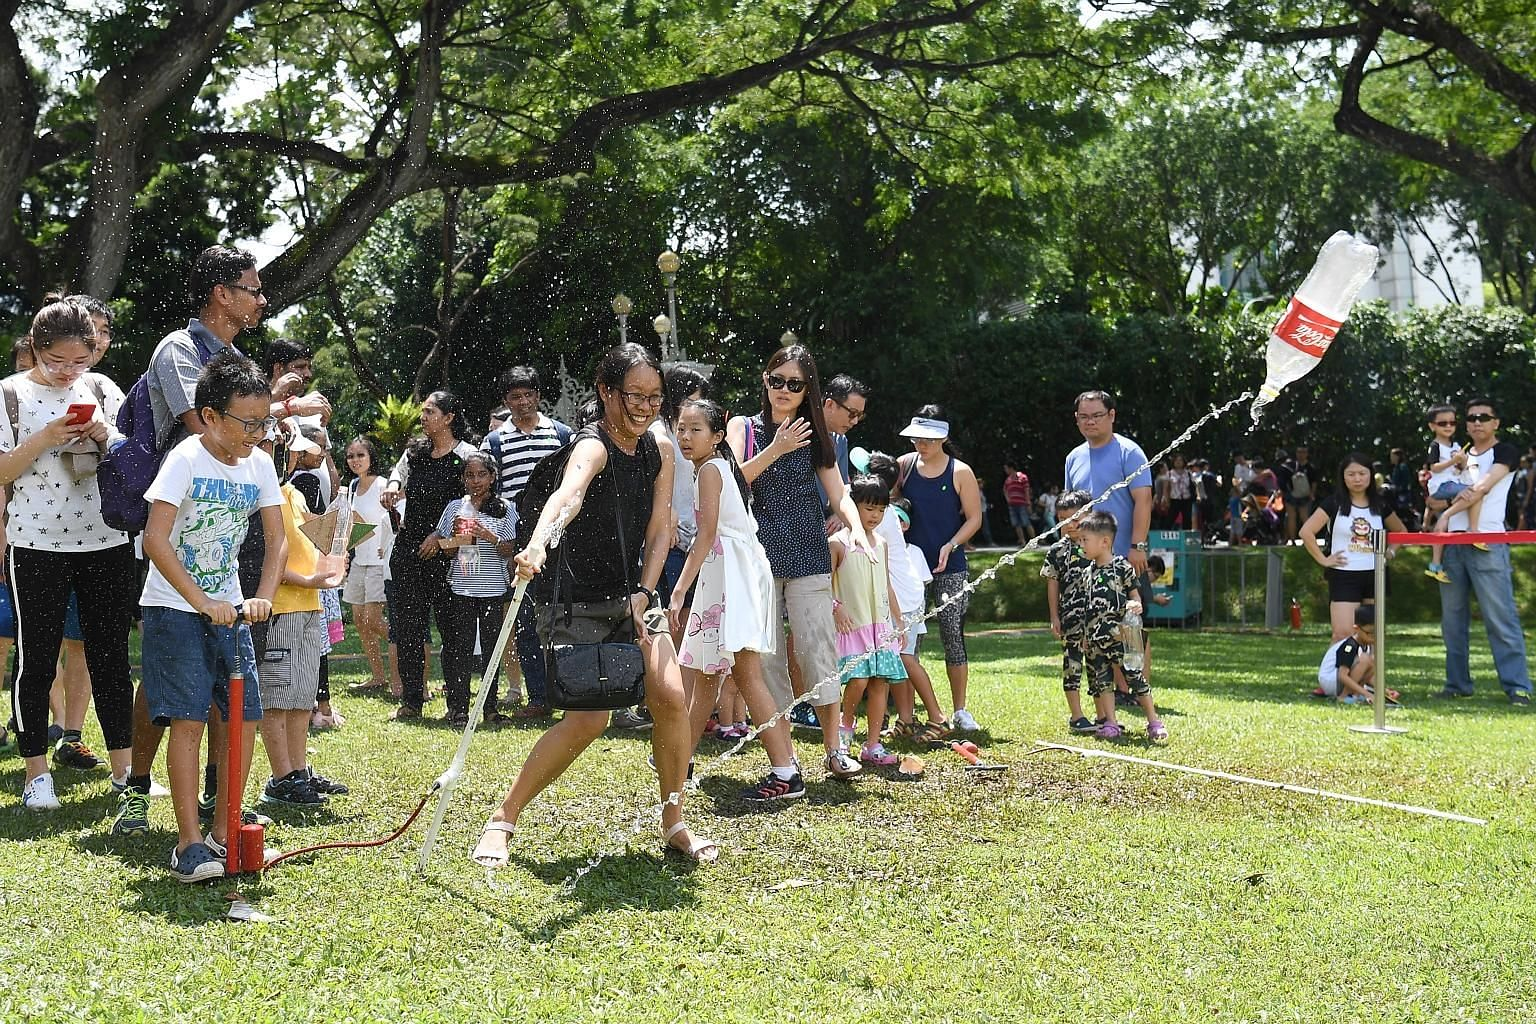 Clear skies and sunny weather greeted visitors to the Labour Day celebration at the Istana yesterday. Among the activities they got to enjoy was one involving firing rockets improvised from plastic bottles.